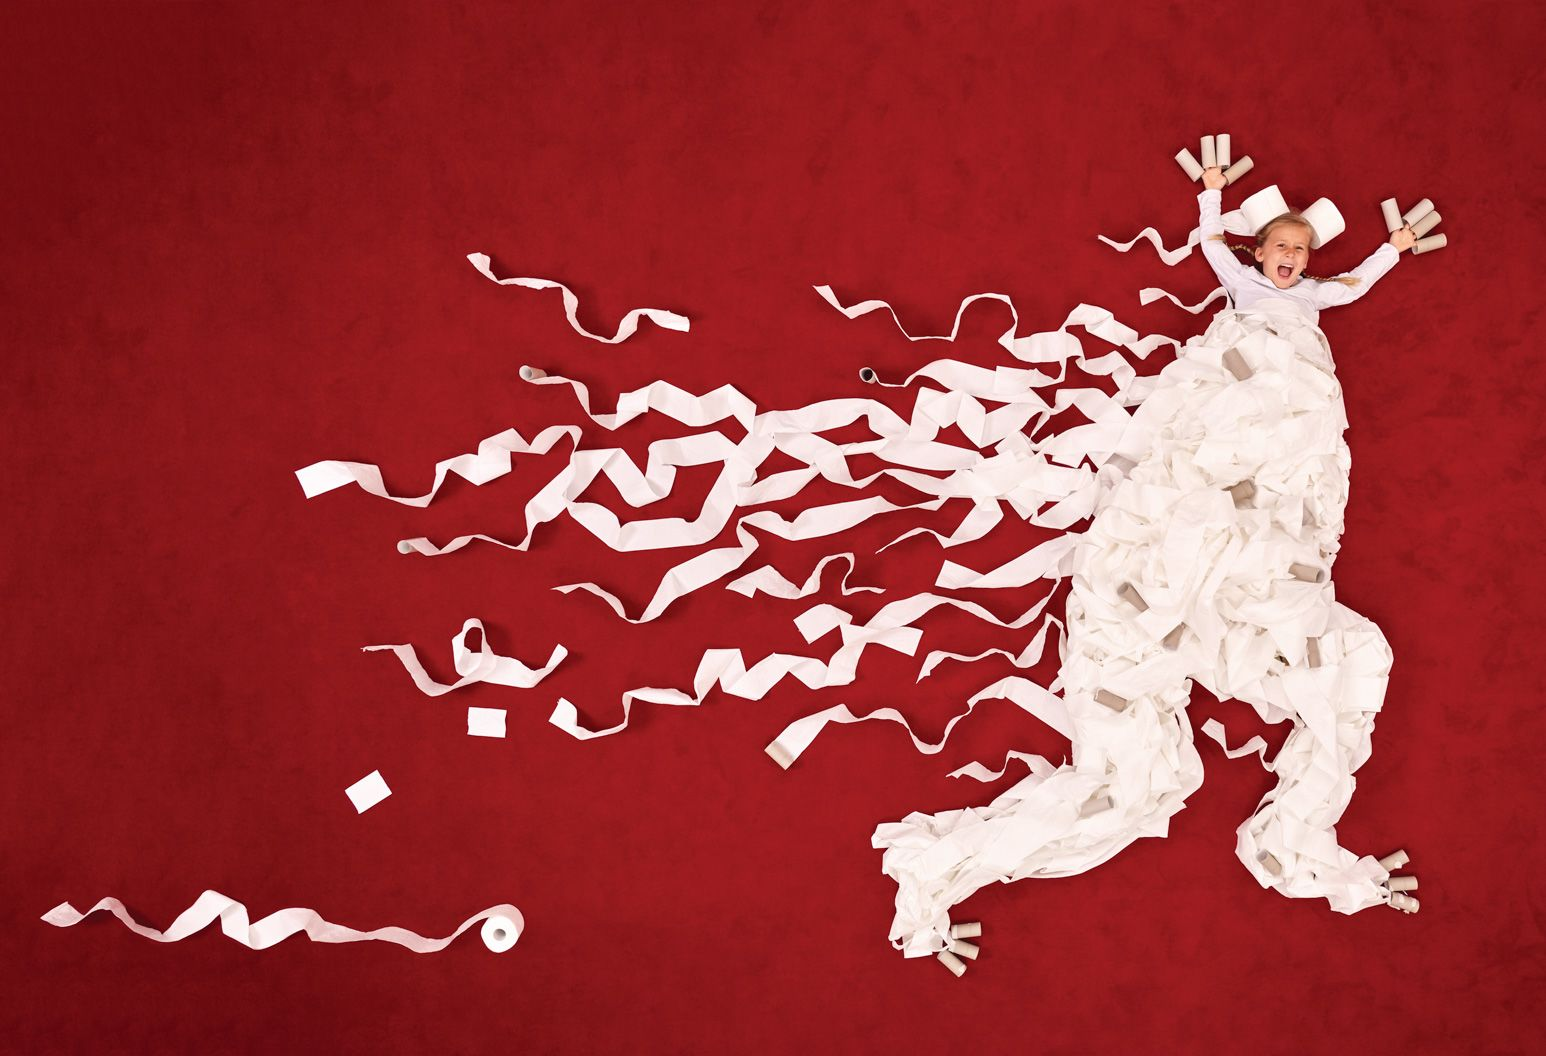 This is an abstract image with the face of a five year old girl with the body of a monster made out of toilet paper. She is running with her arms up as toilet paper trails behind her over a red background.